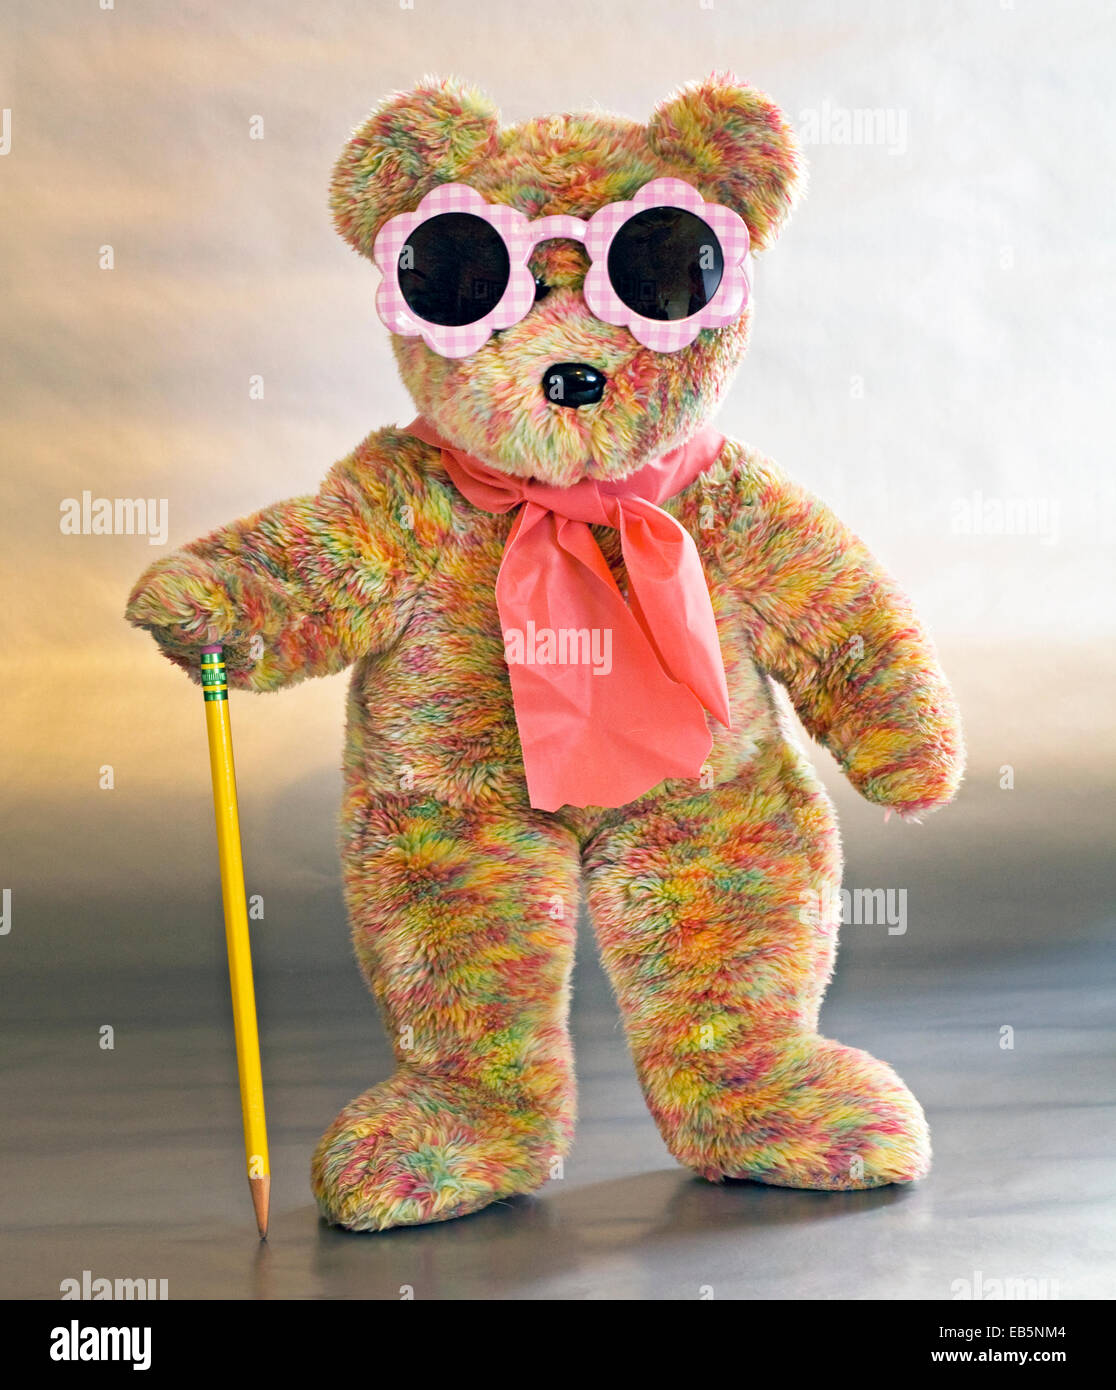 A teddybear dressed in sunglasses and carrying a cane Stock Photo